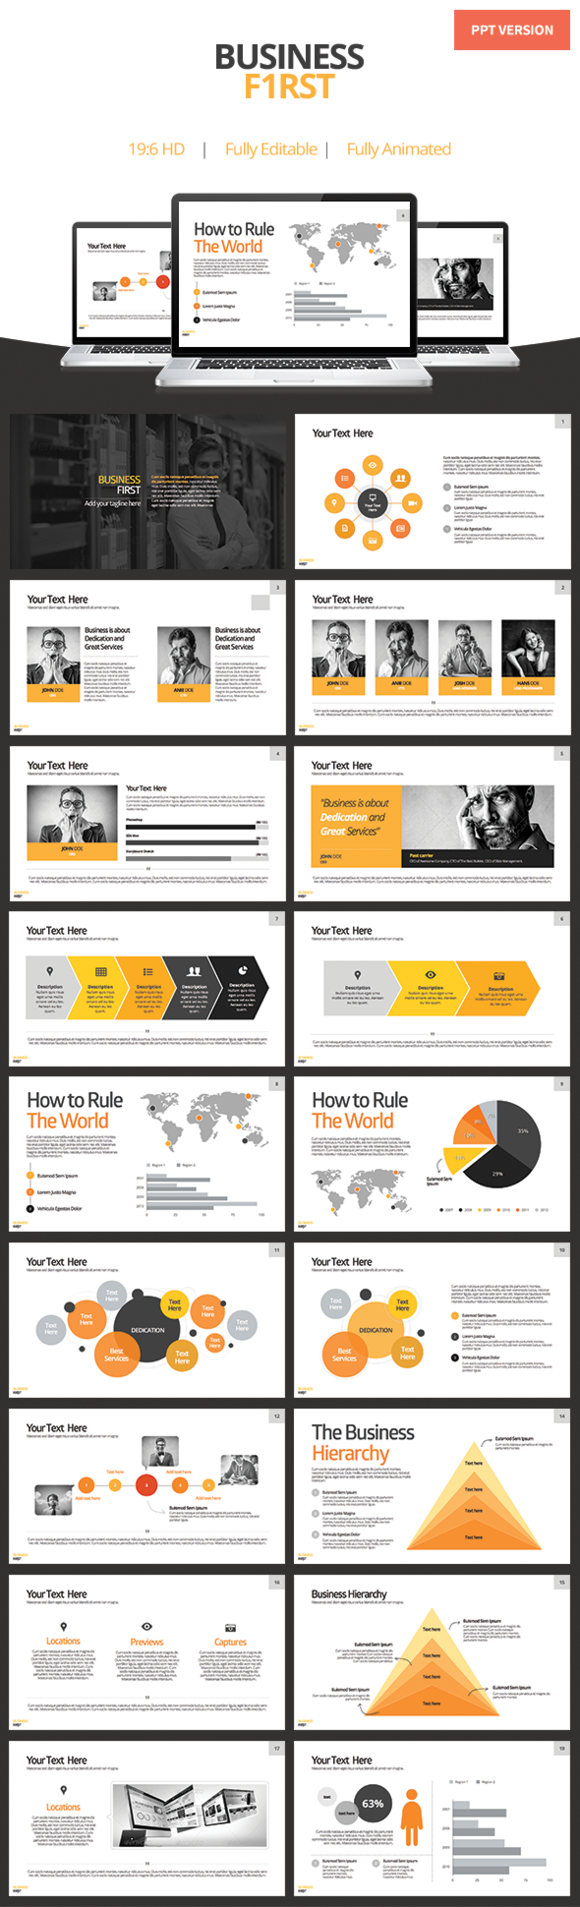 Business First  Powerpoint Template By Slidehack On Creative